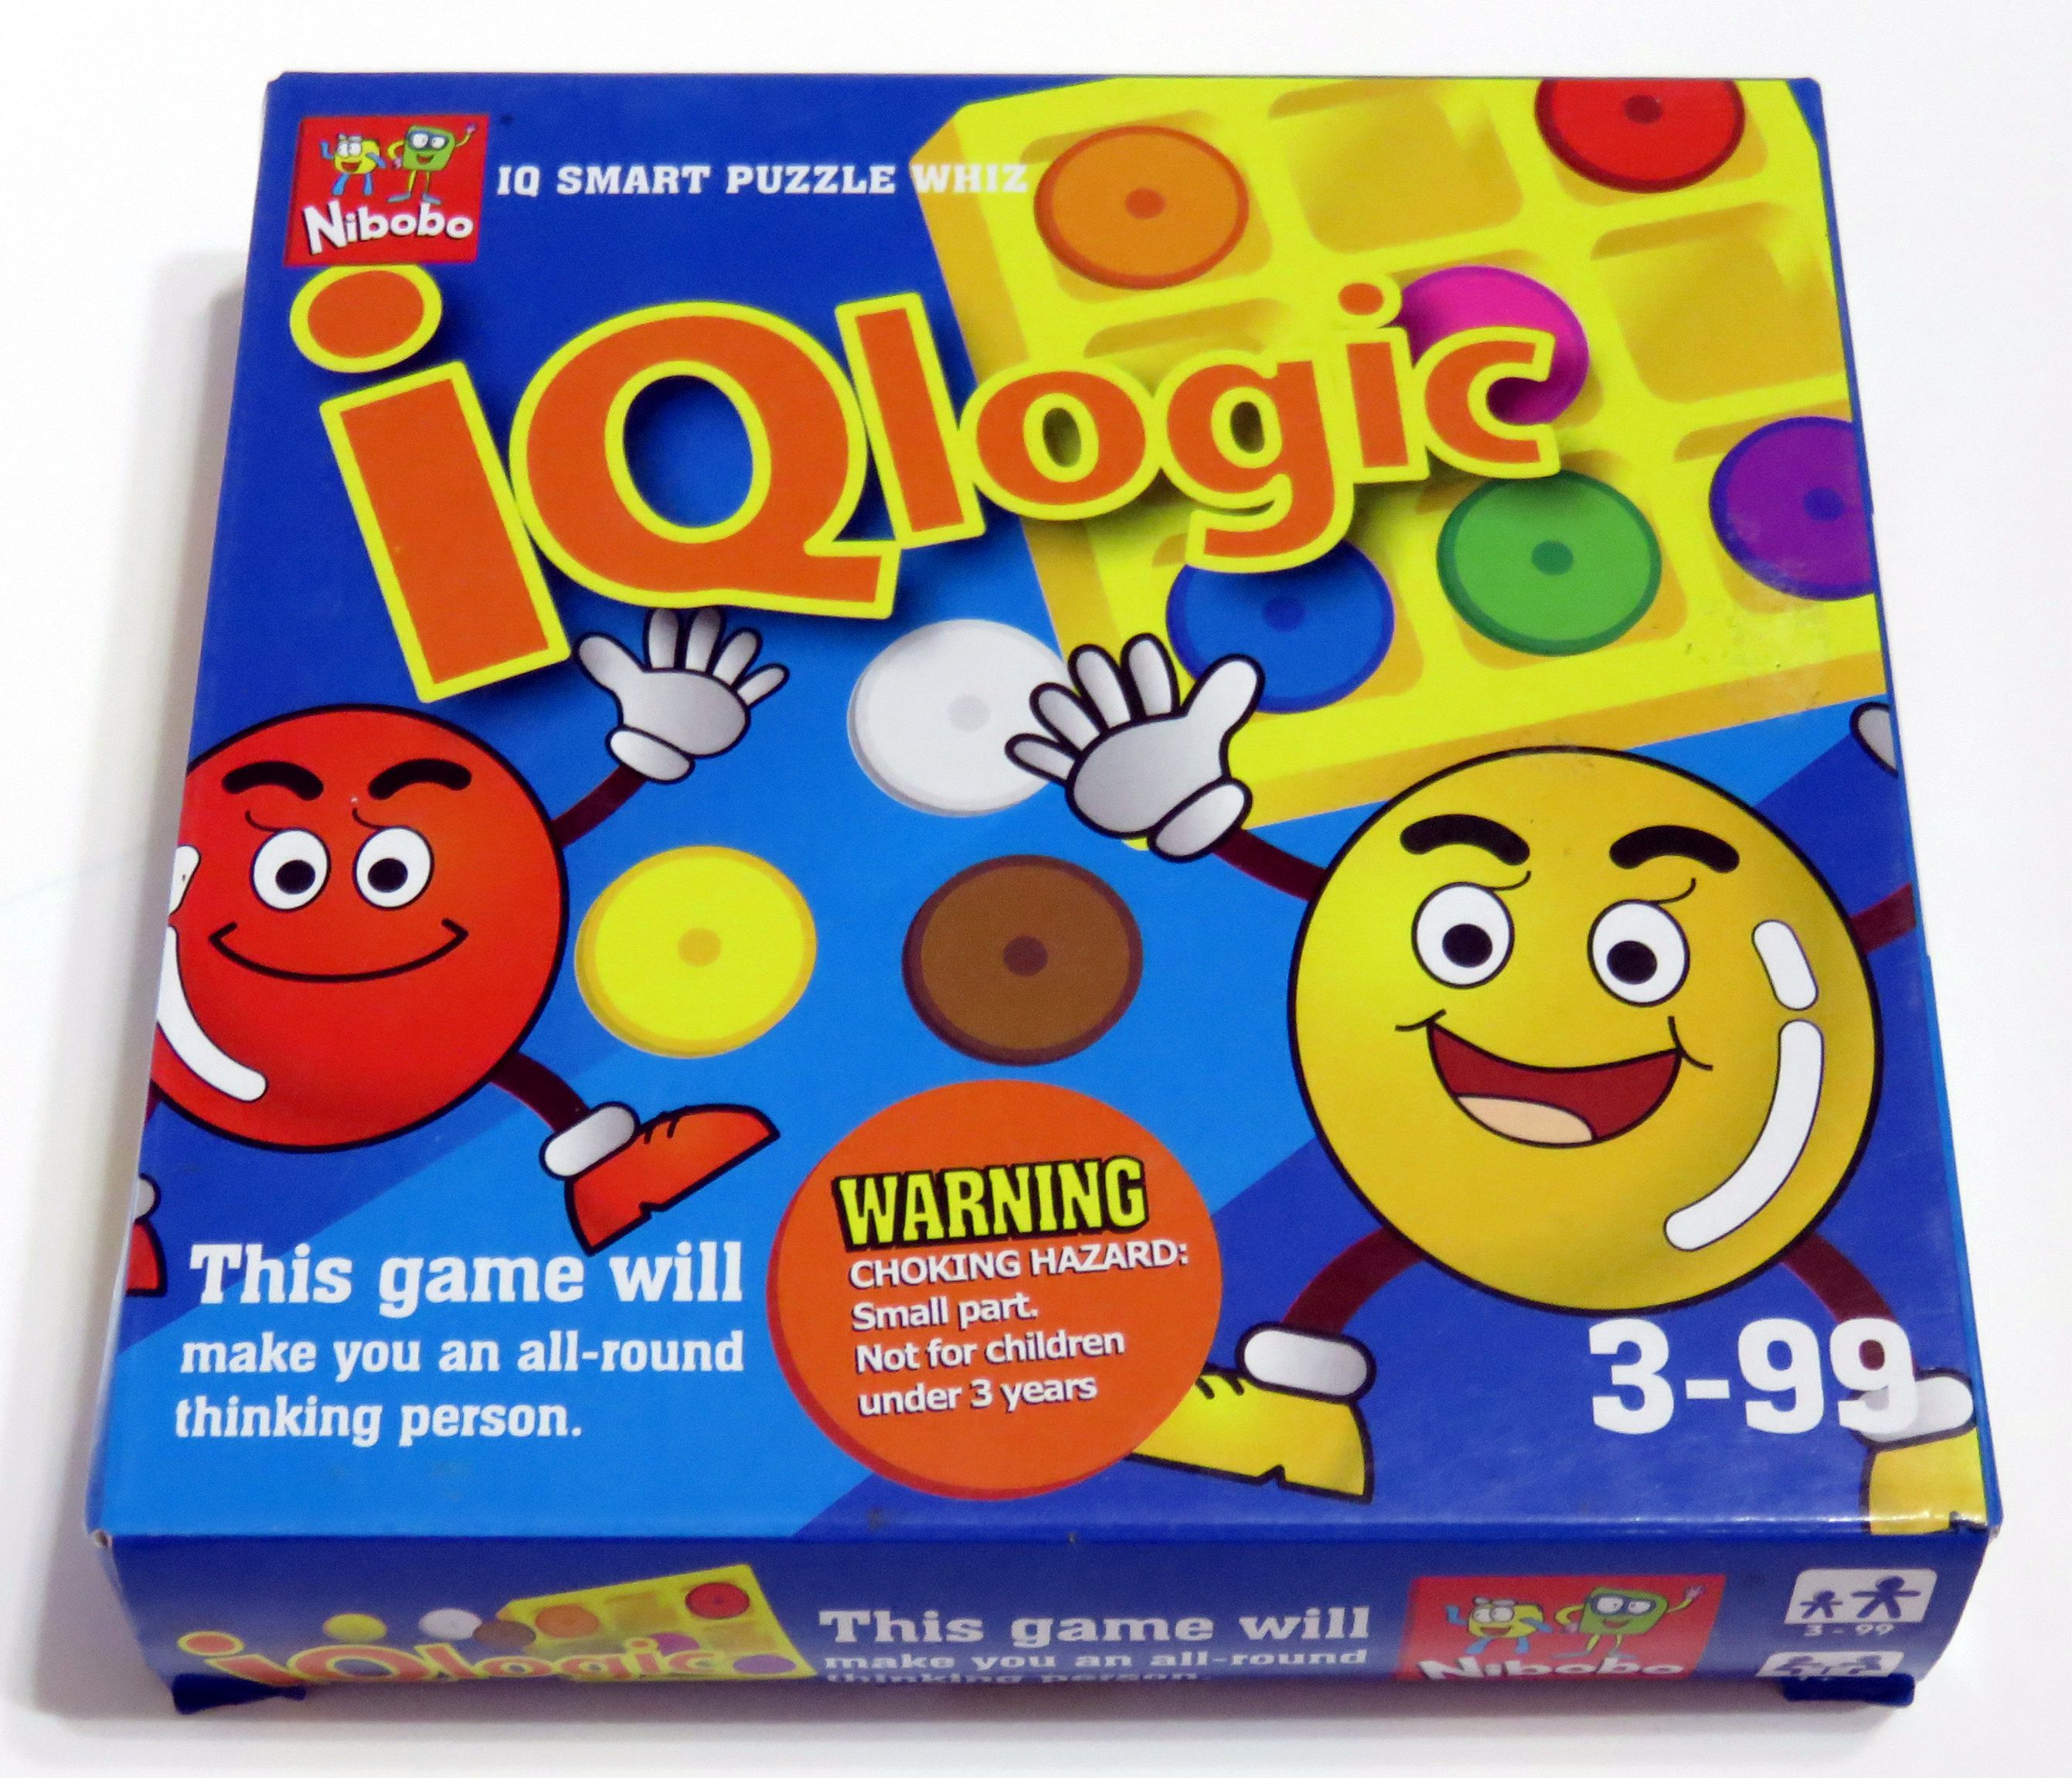 IQ Logic 12.90 This game will make you an allround